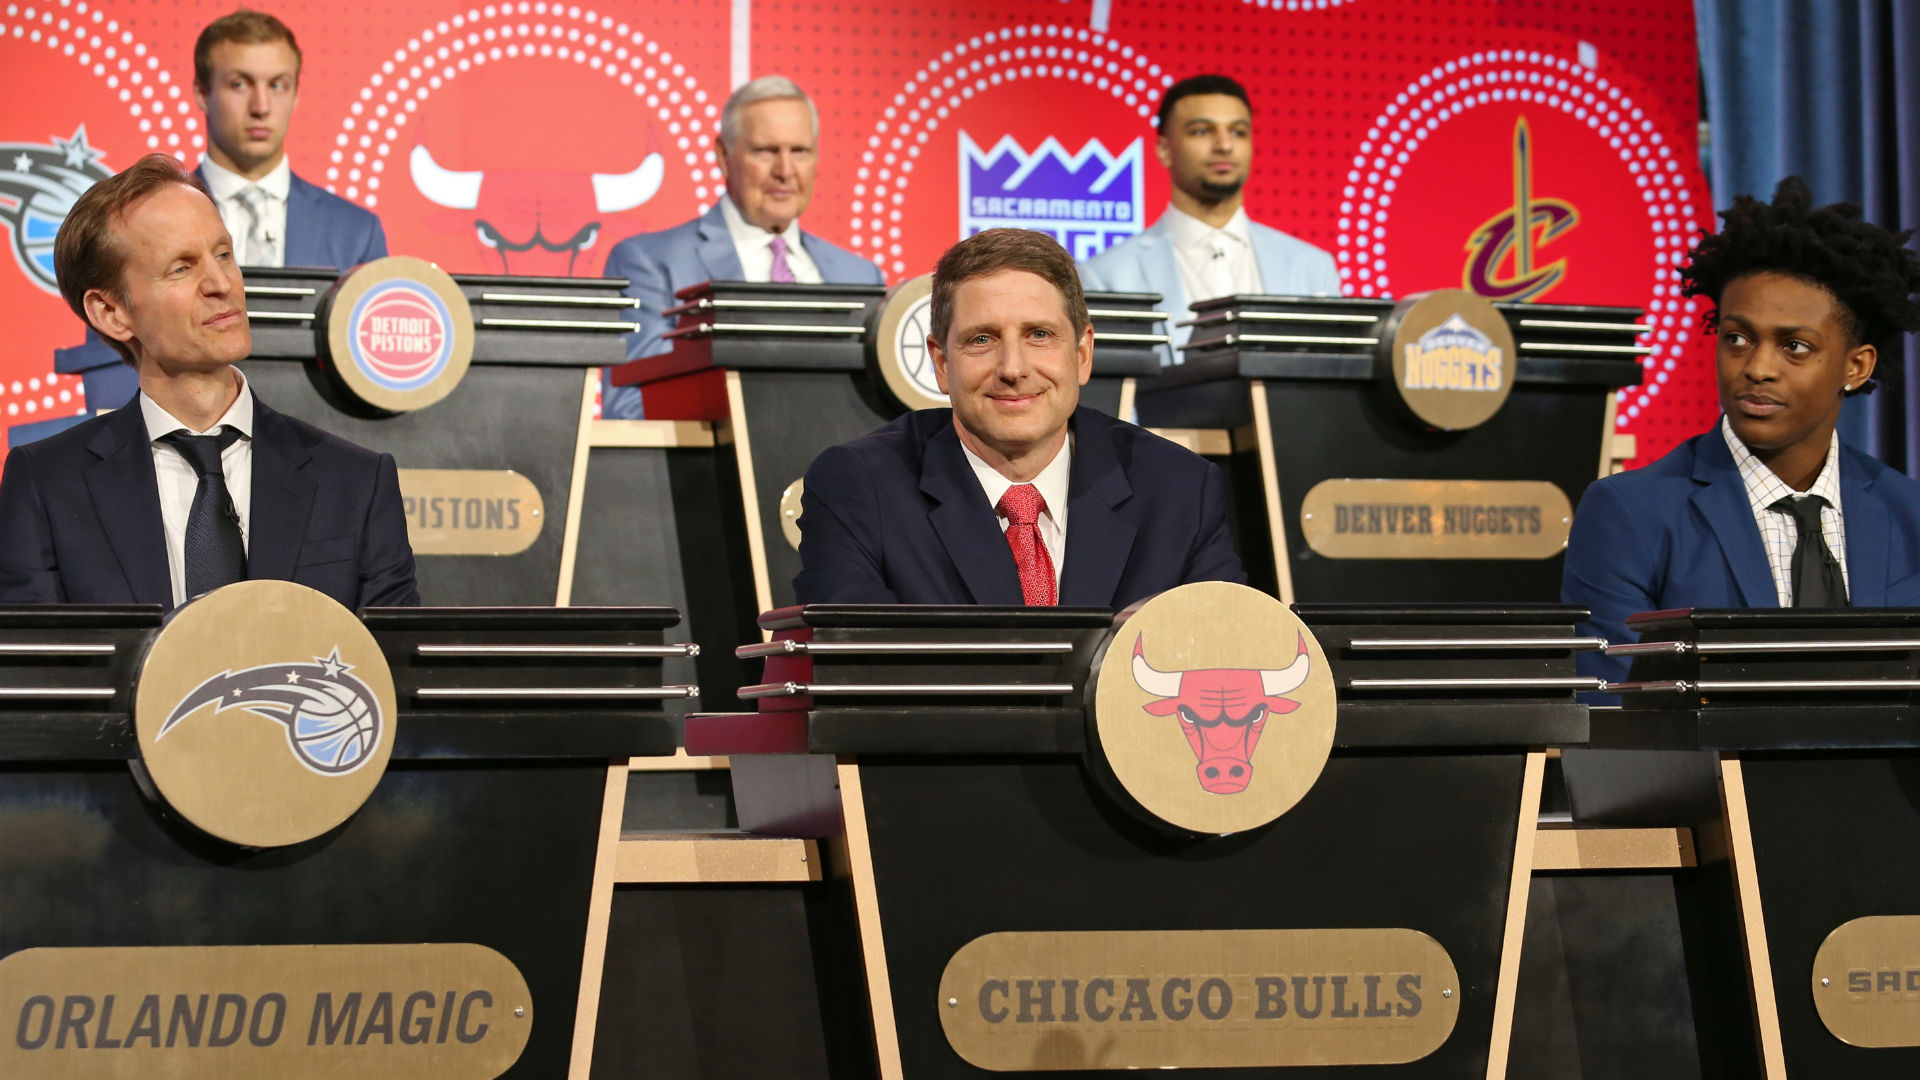 winners and losers from 2018 nba draft lottery